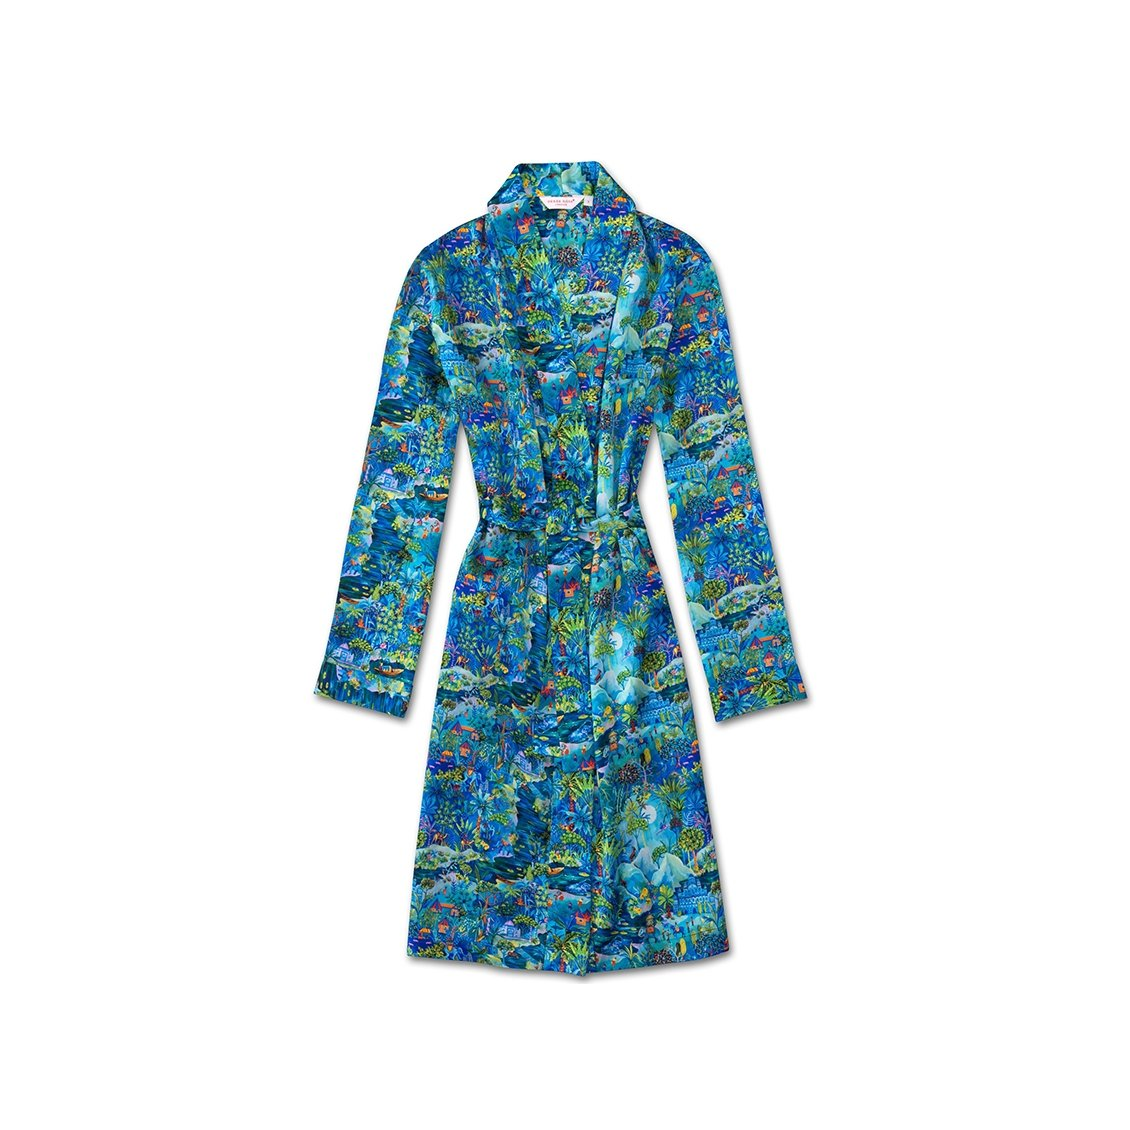 Women's Robe Brindisi 24 Silk Multi